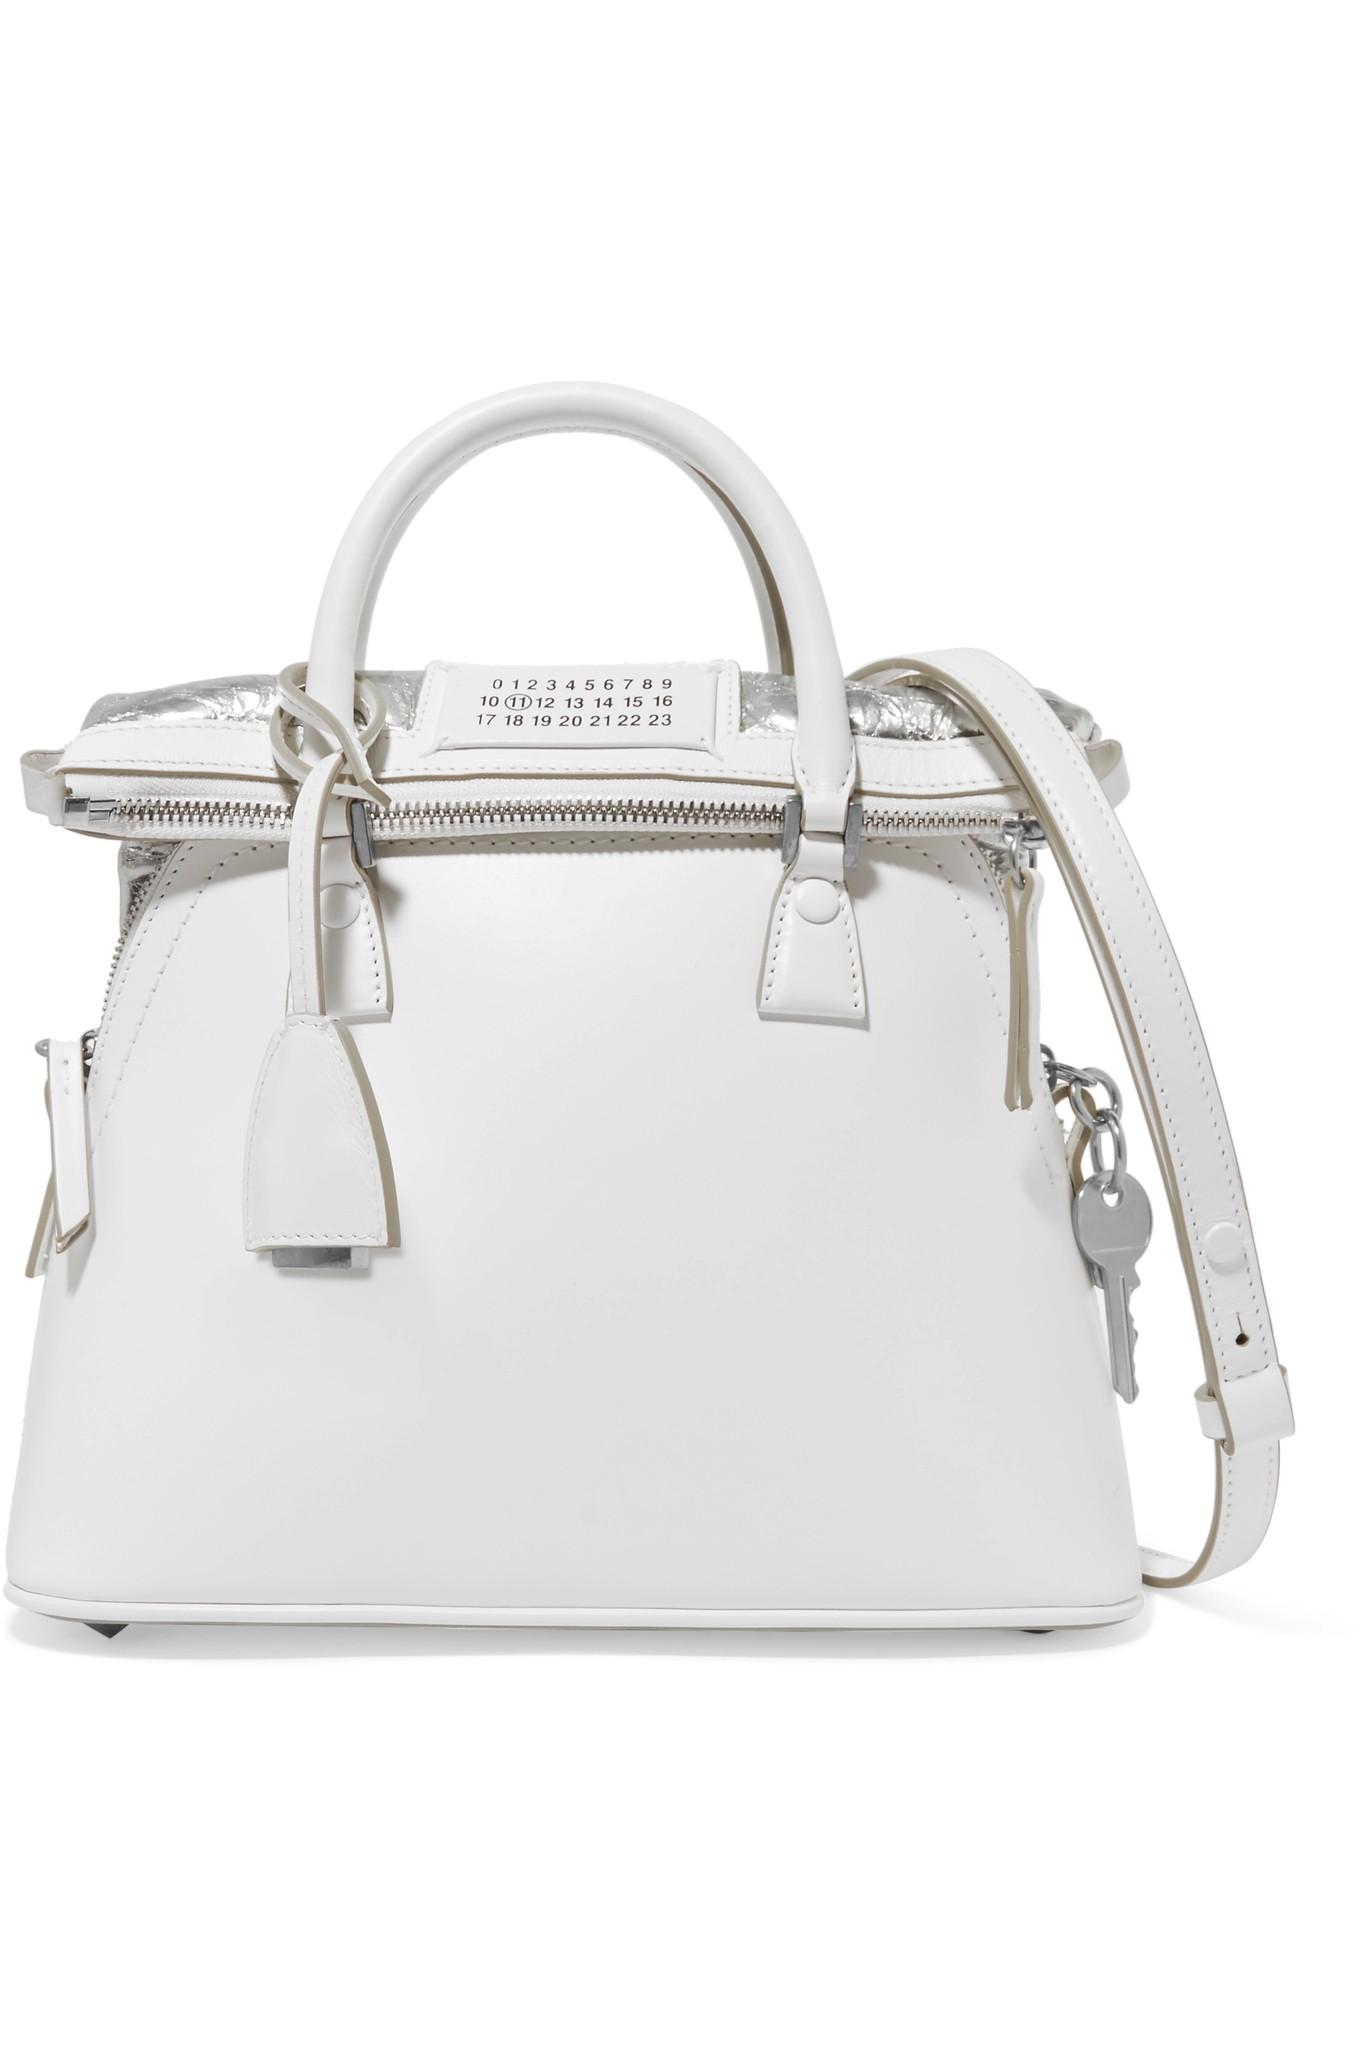 Baby Margiela Tote Leather White Maison Lyst In 5ac hsdtCBxQr